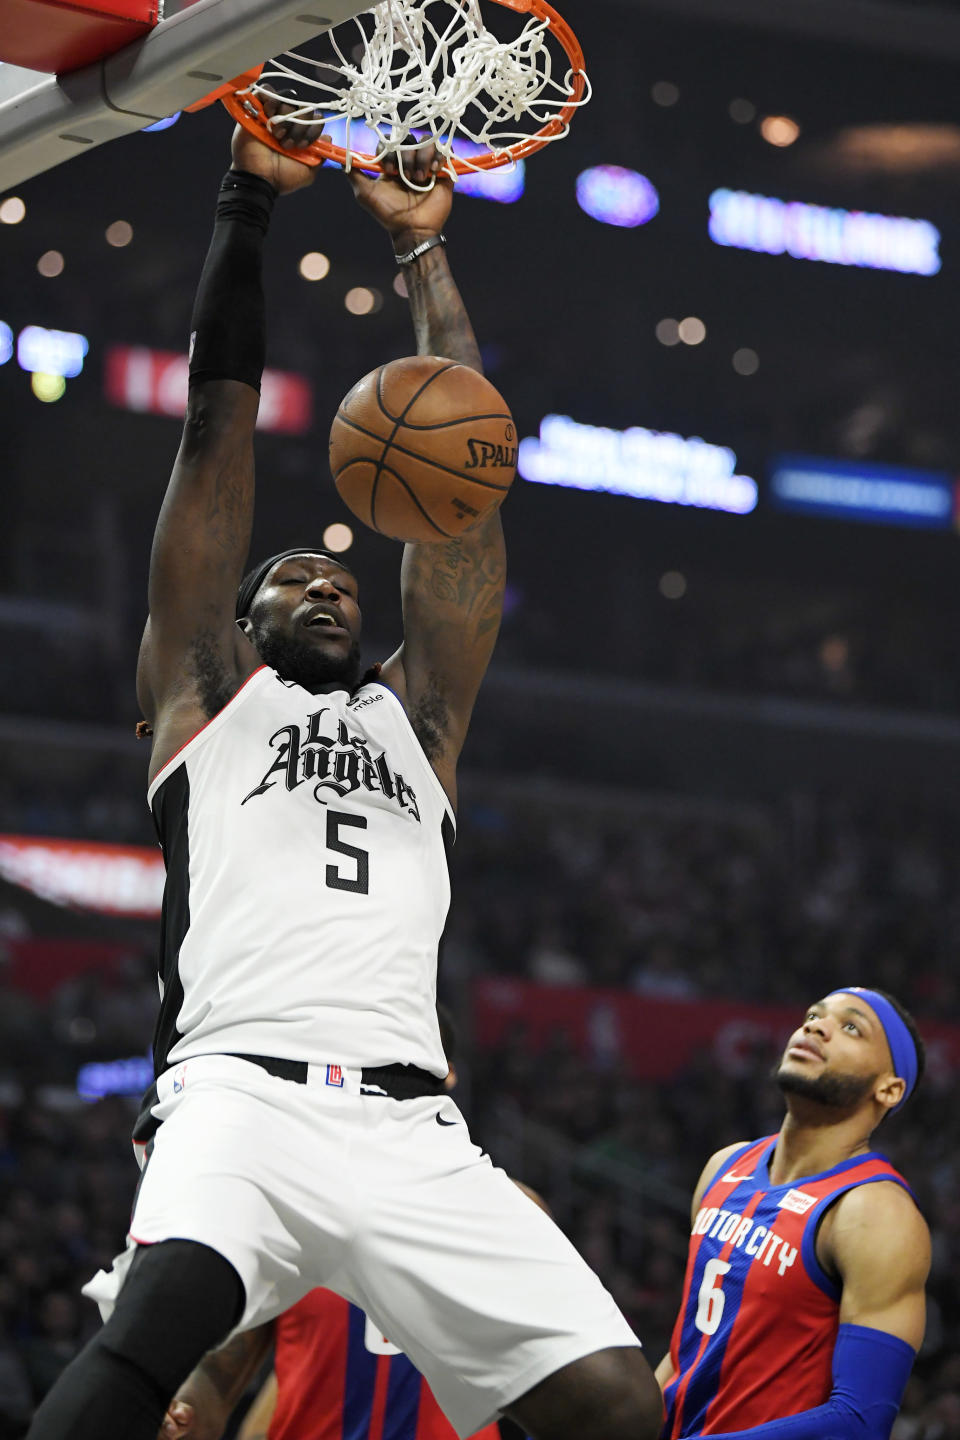 Los Angeles Clippers forward Montrezl Harrell dunks as Detroit Pistons guard Bruce Brown watches during the first half of an NBA basketball game Thursday, Jan. 2, 2020, in Los Angeles. (AP Photo/Mark J. Terrill)